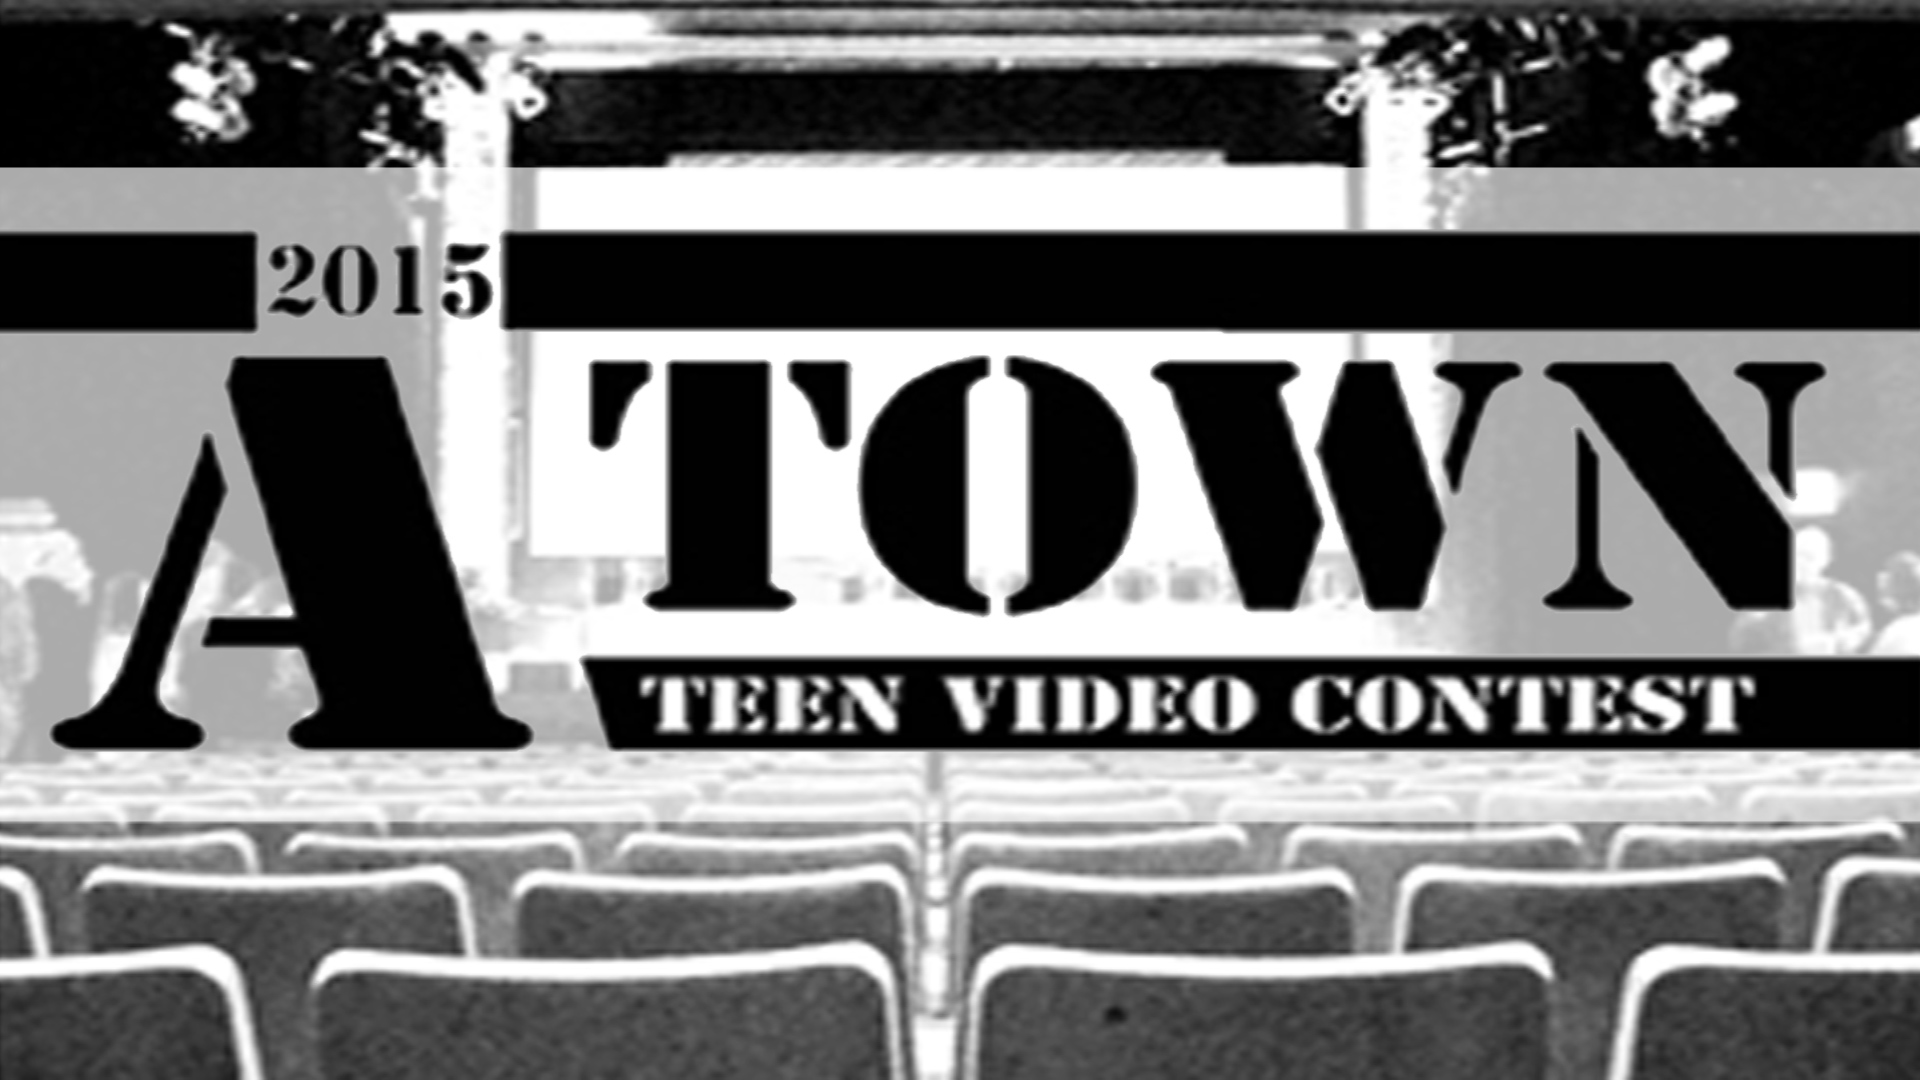 A Town Teen Video Contest 2015